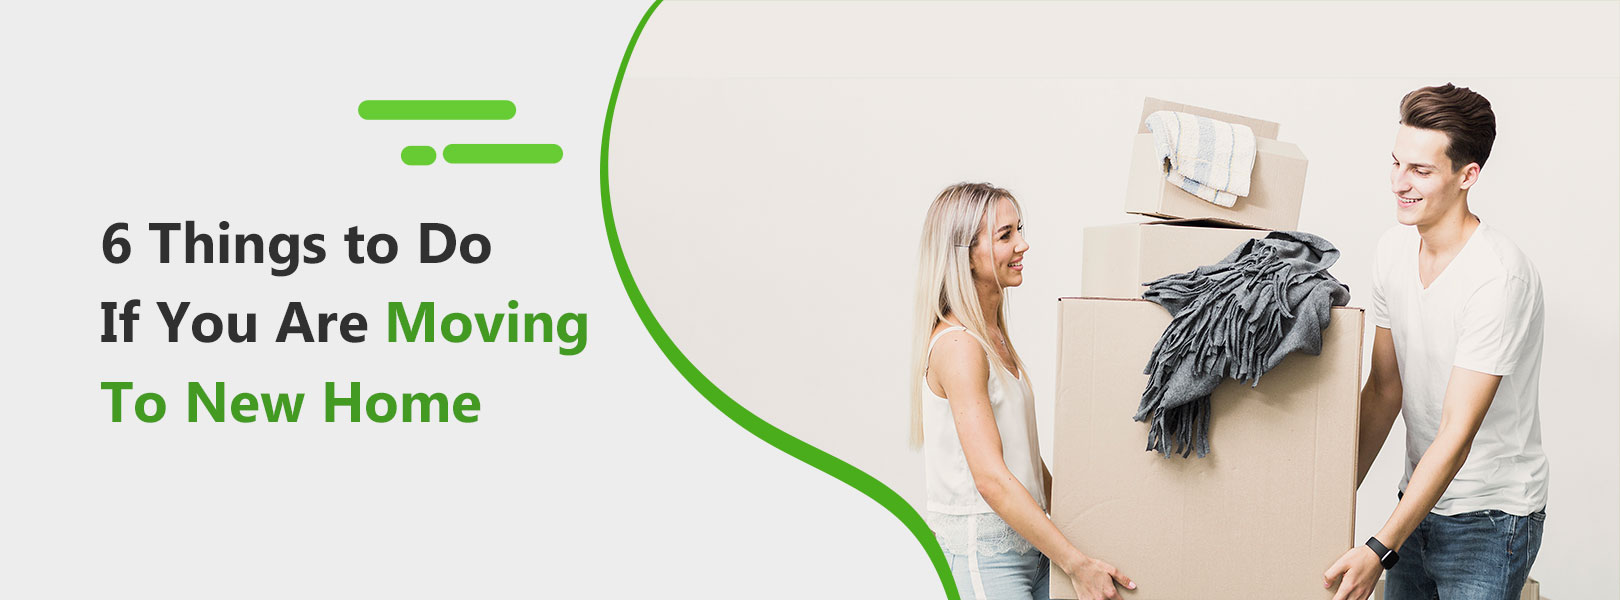 6 Important Things to Do When Moving into a New House